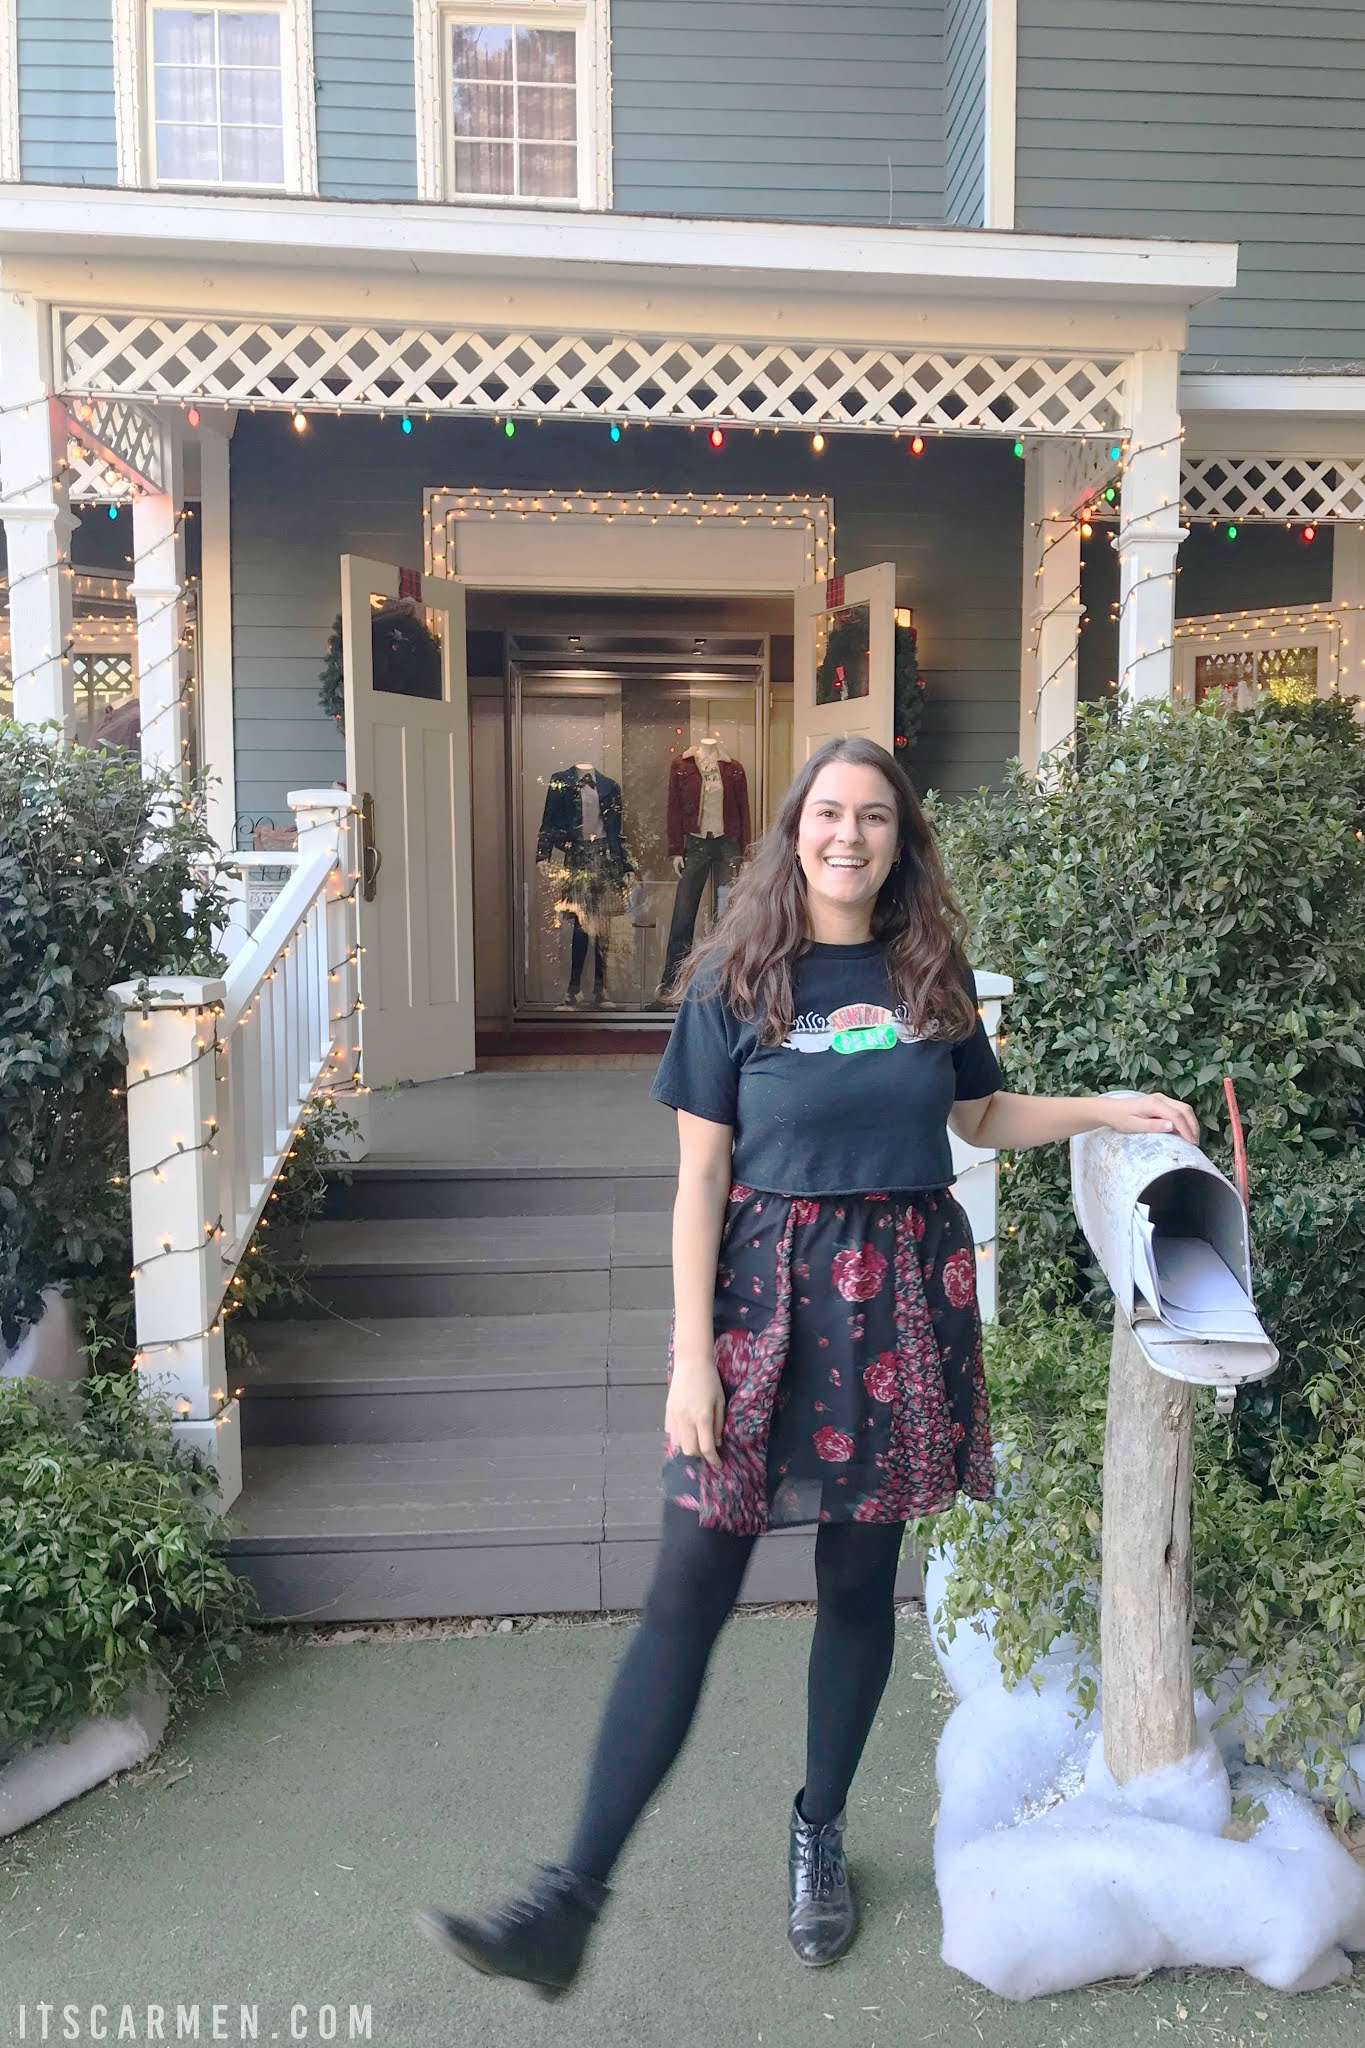 Warner Bros Hollywood Tour Lorelai Gilmore and Rory's house in Stars Hollow where was gilmore girls filmed where is gilmore girls filmed gilmore girls filming location where is stars hollow filmed gilmore girls set where did they film gilmore girls gilmore girls location  stars hollow location